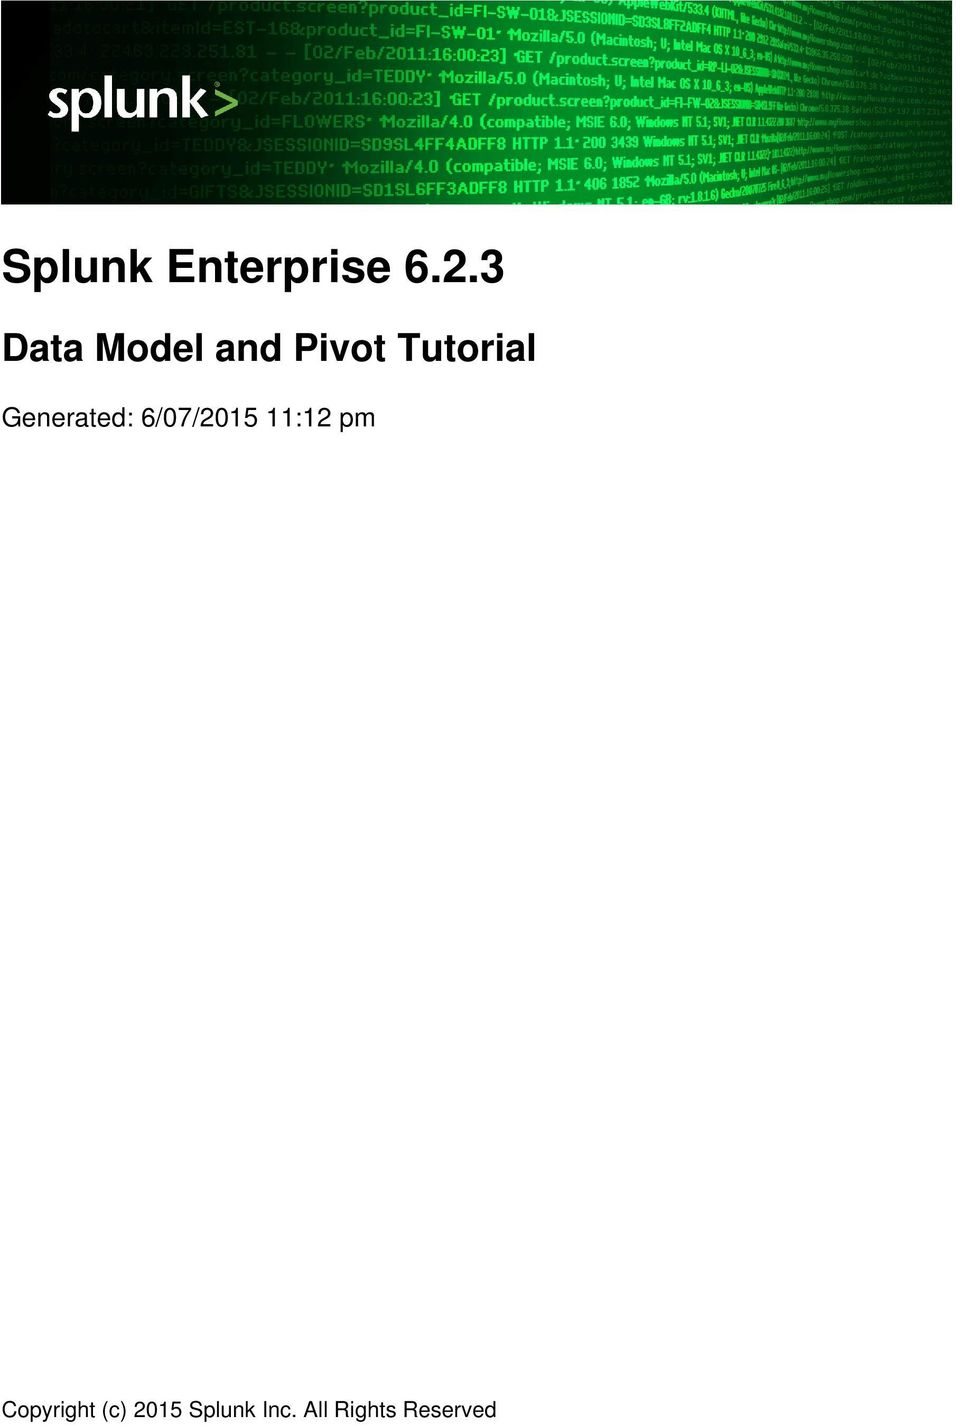 Splunk Enterprise Pdf